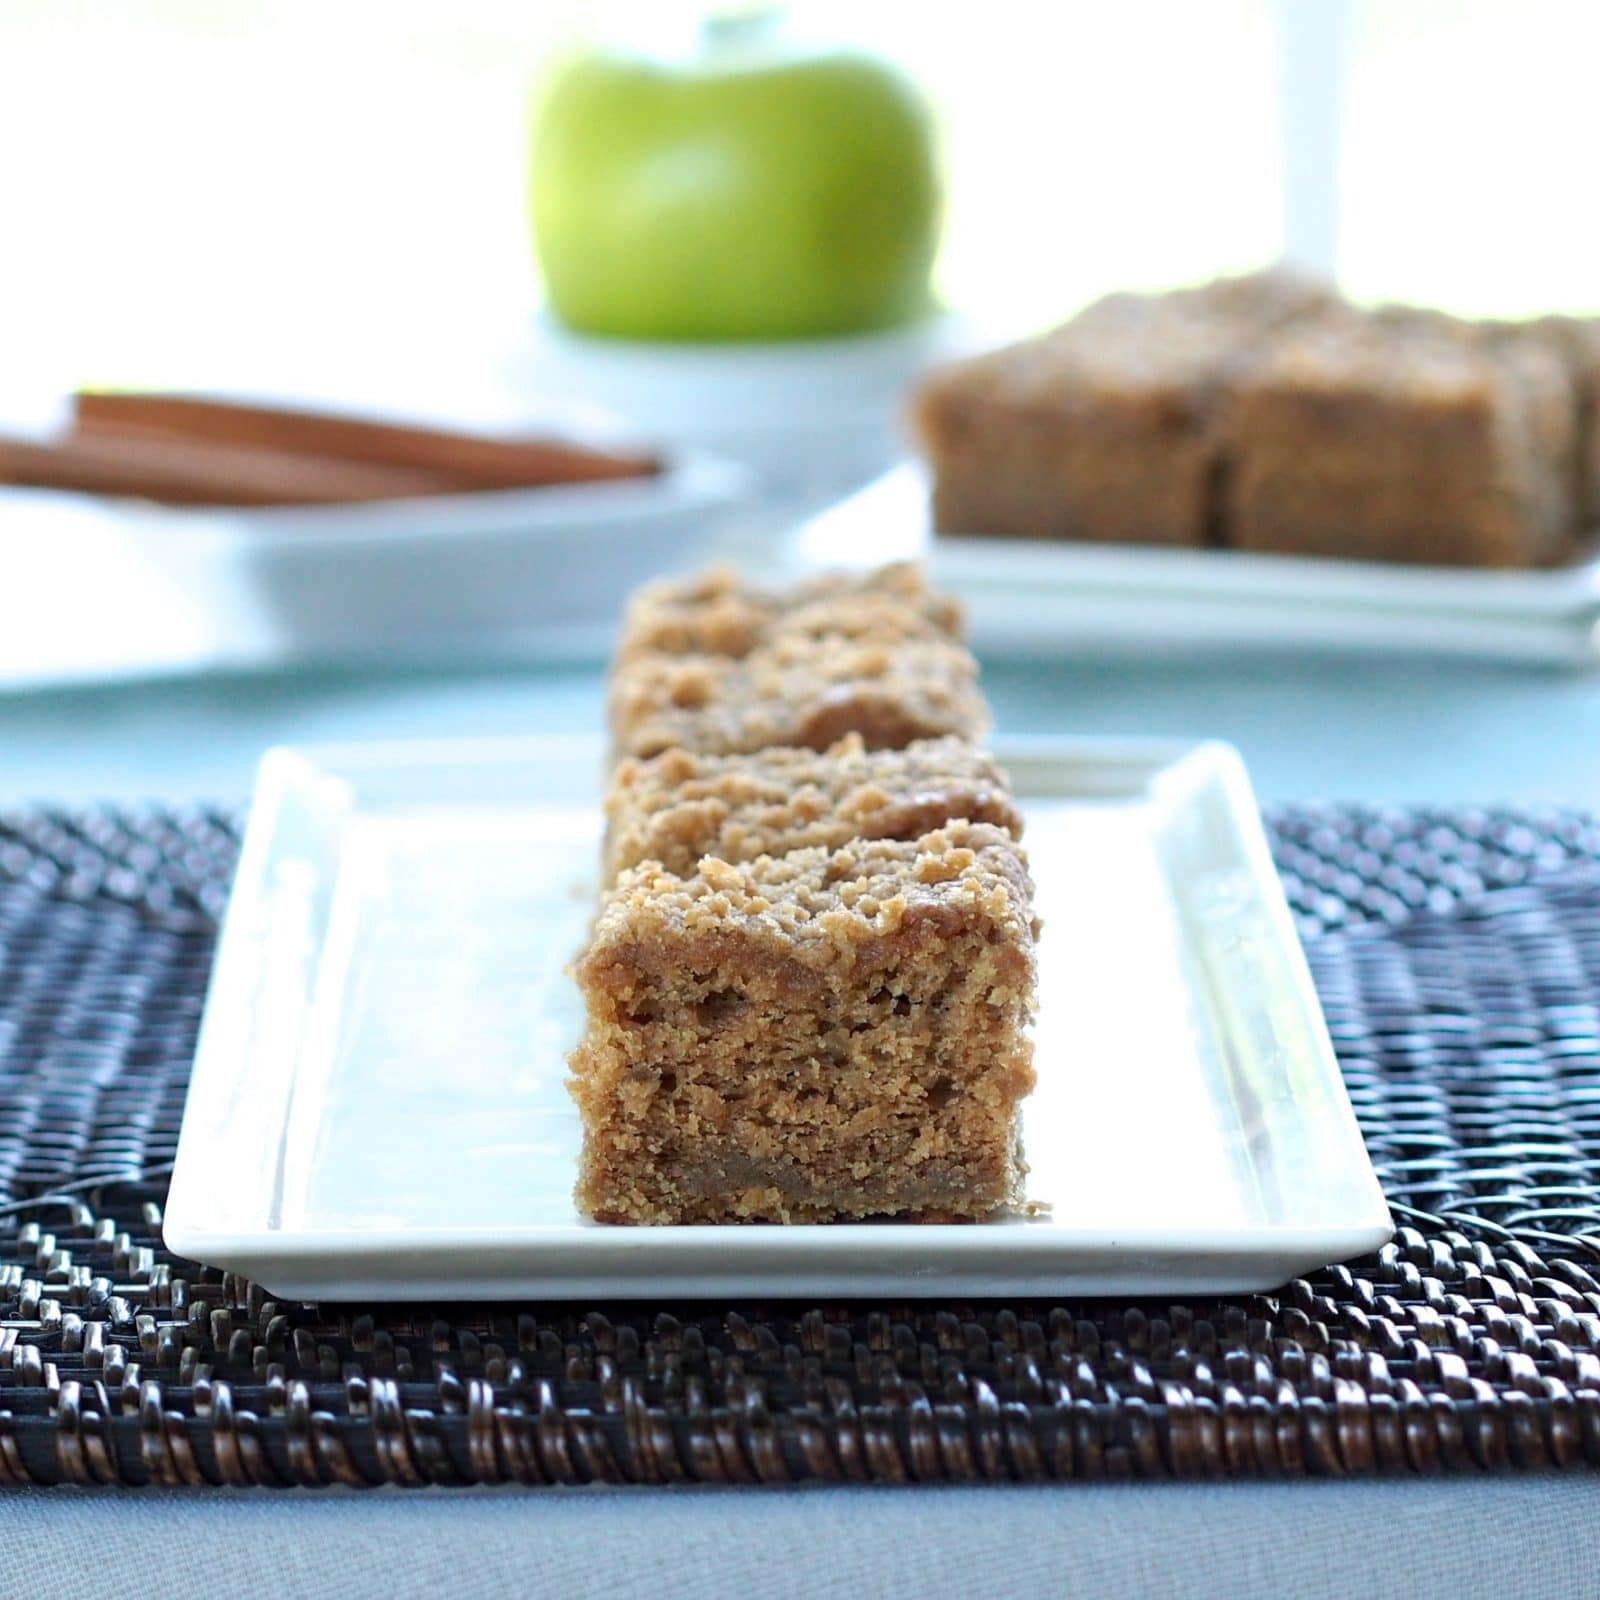 Apple Brown Sugar Coffee Cake is everything a great coffee cake should be - moist and filled with flavor. simply sated